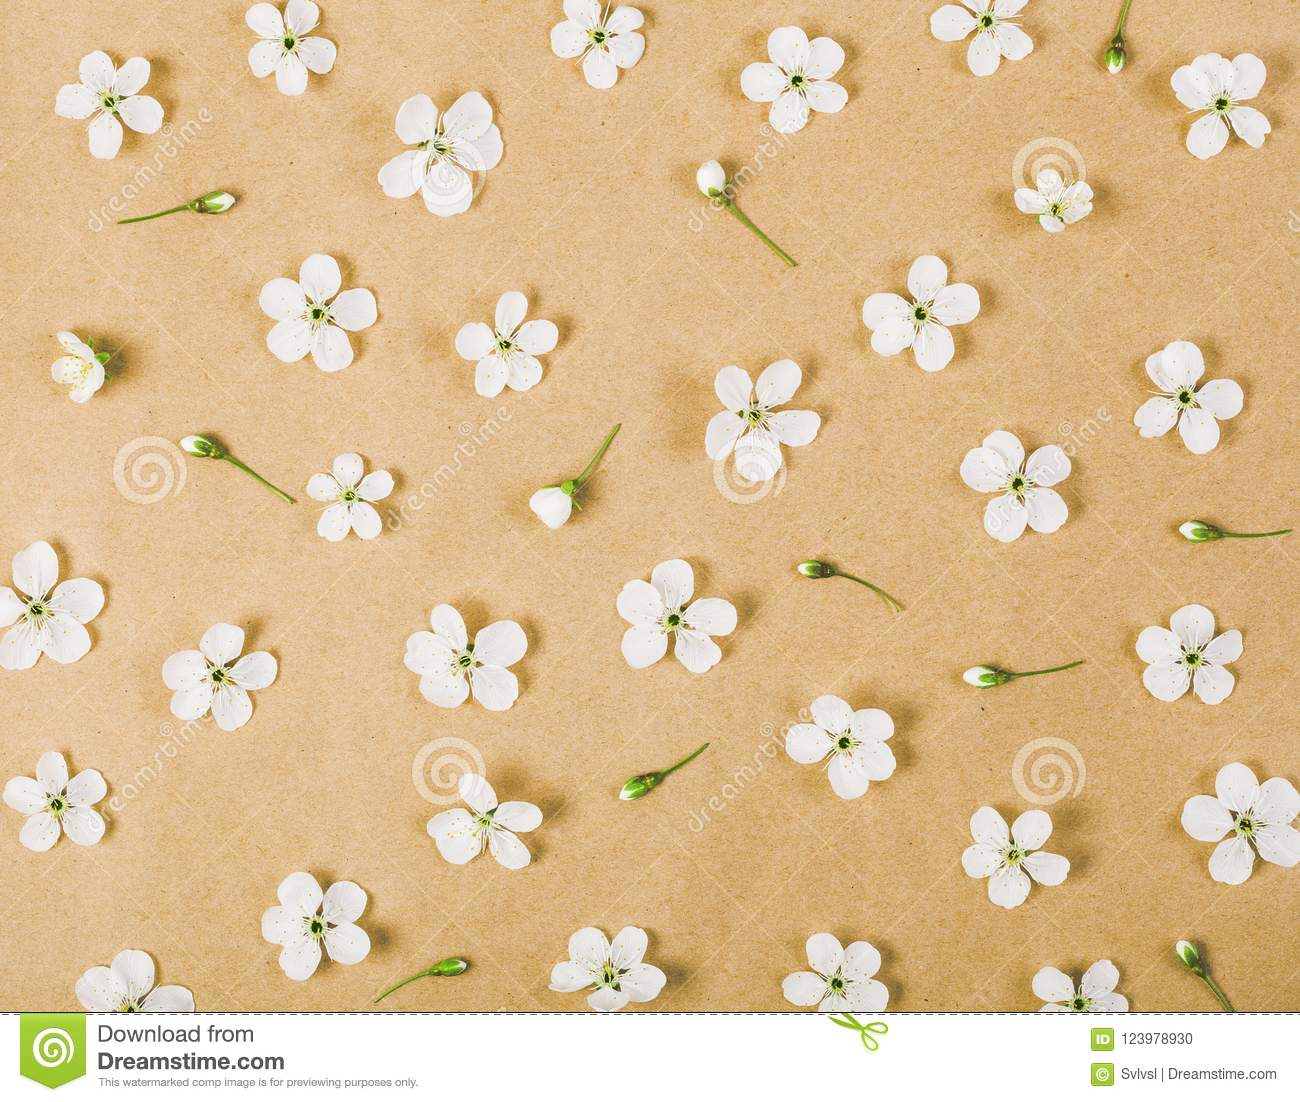 Floral pattern made of white spring flowers and buds on brown paper background. Flat lay.